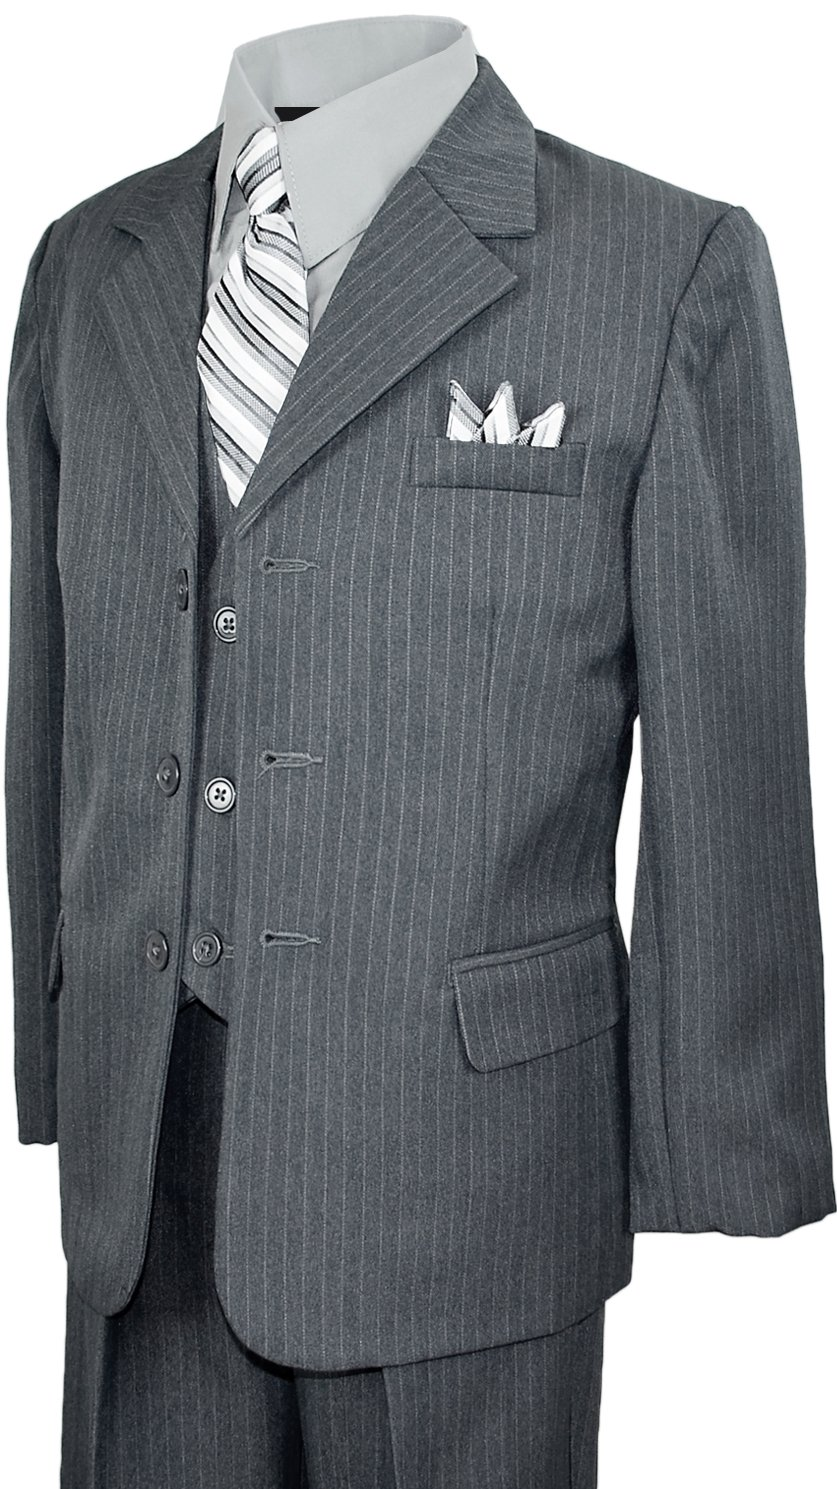 Boys Pinstripe Suit in Grey with Matching Tie Size 4T